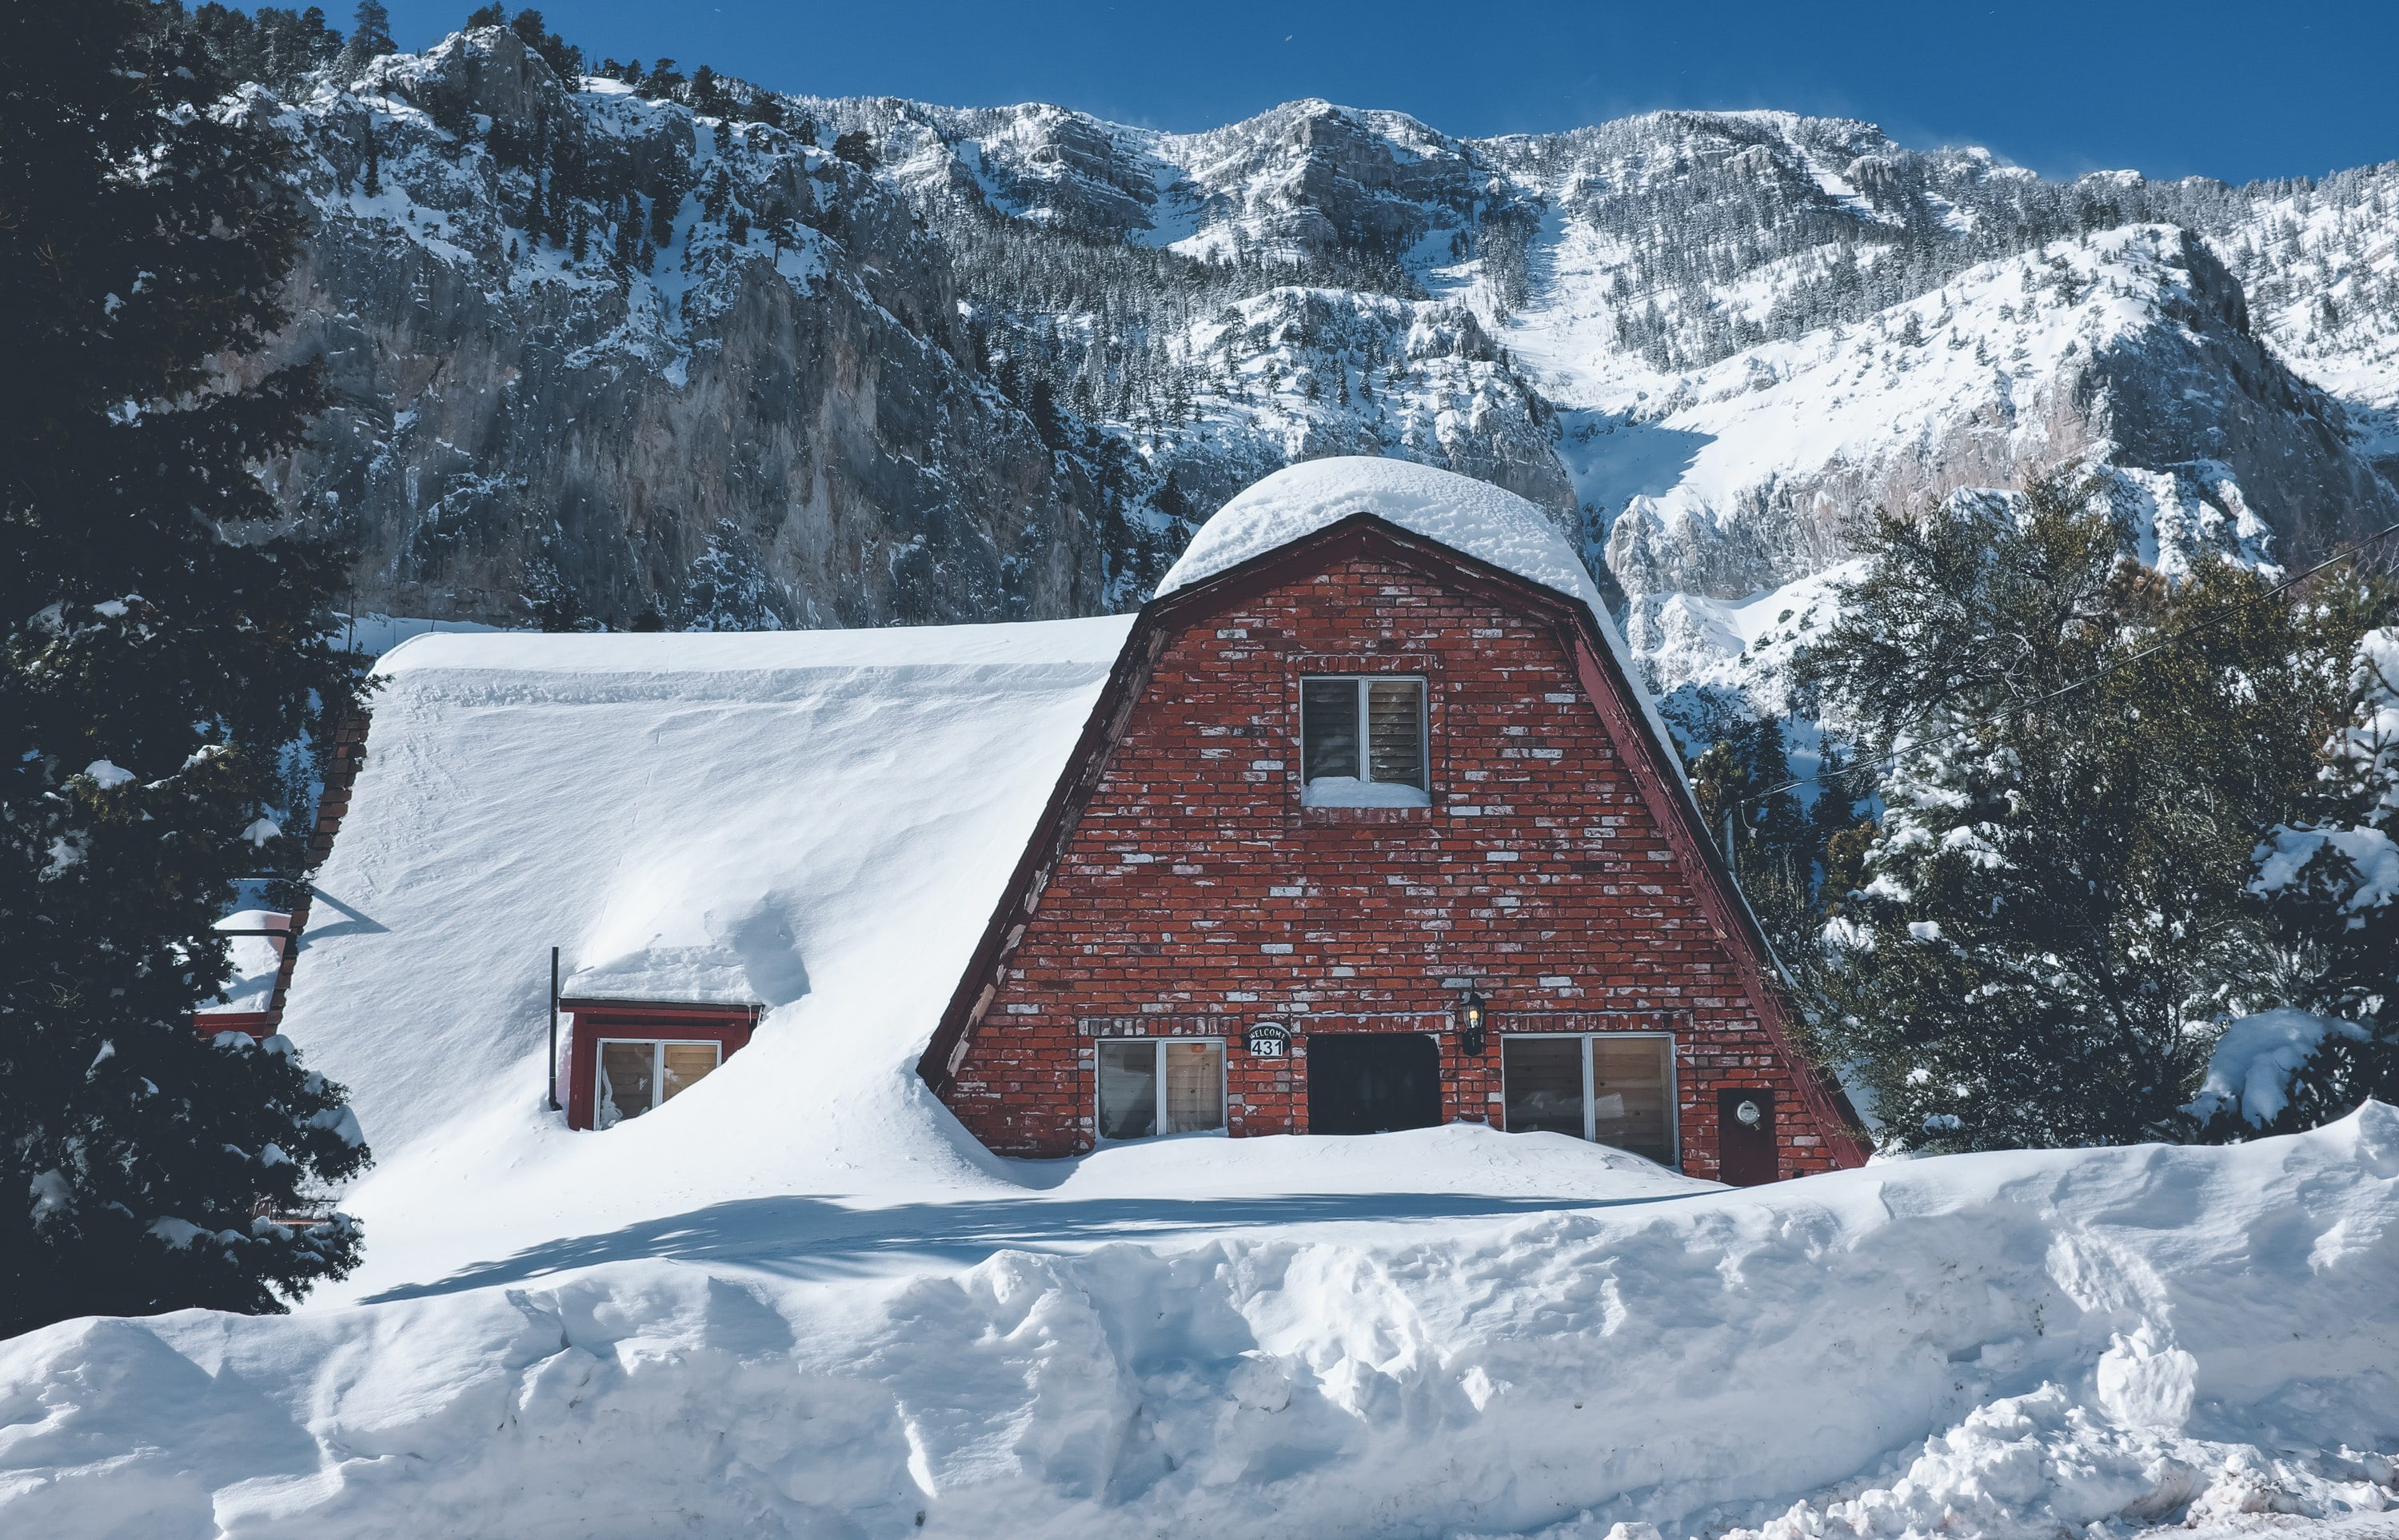 A cabin in the mountains at Mount Charleston, Nevada